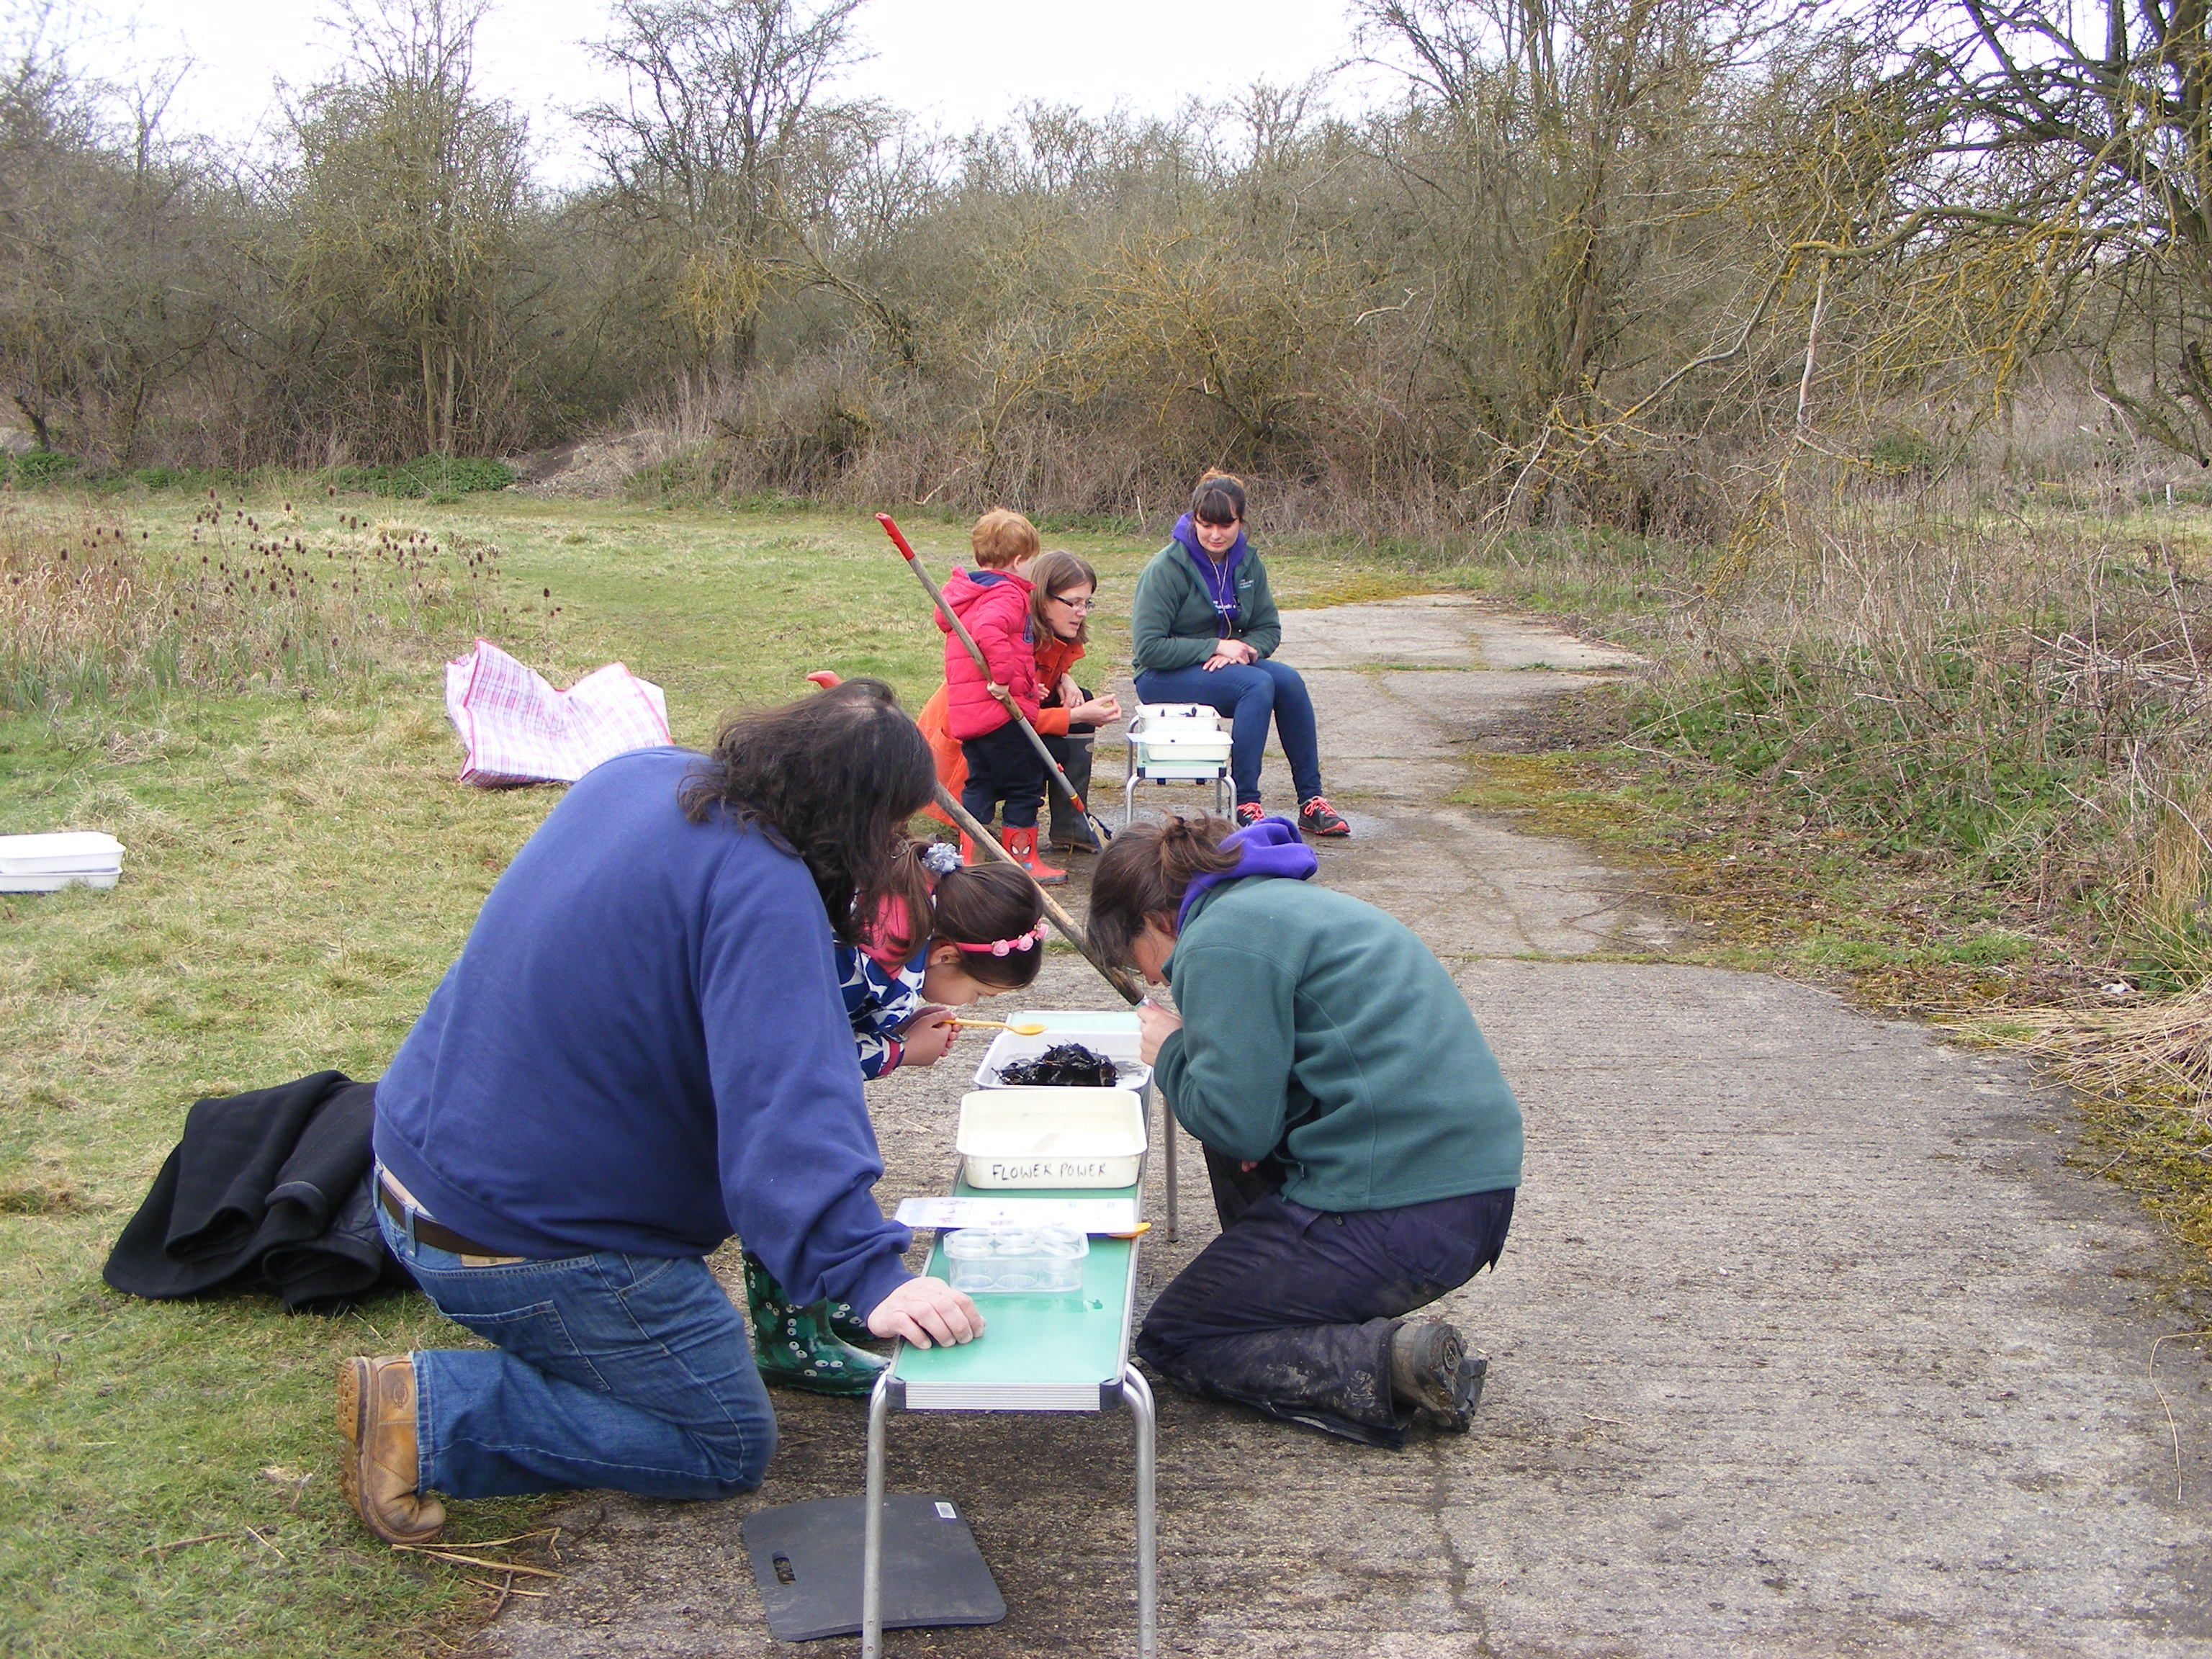 Identifying Our Finds With Images